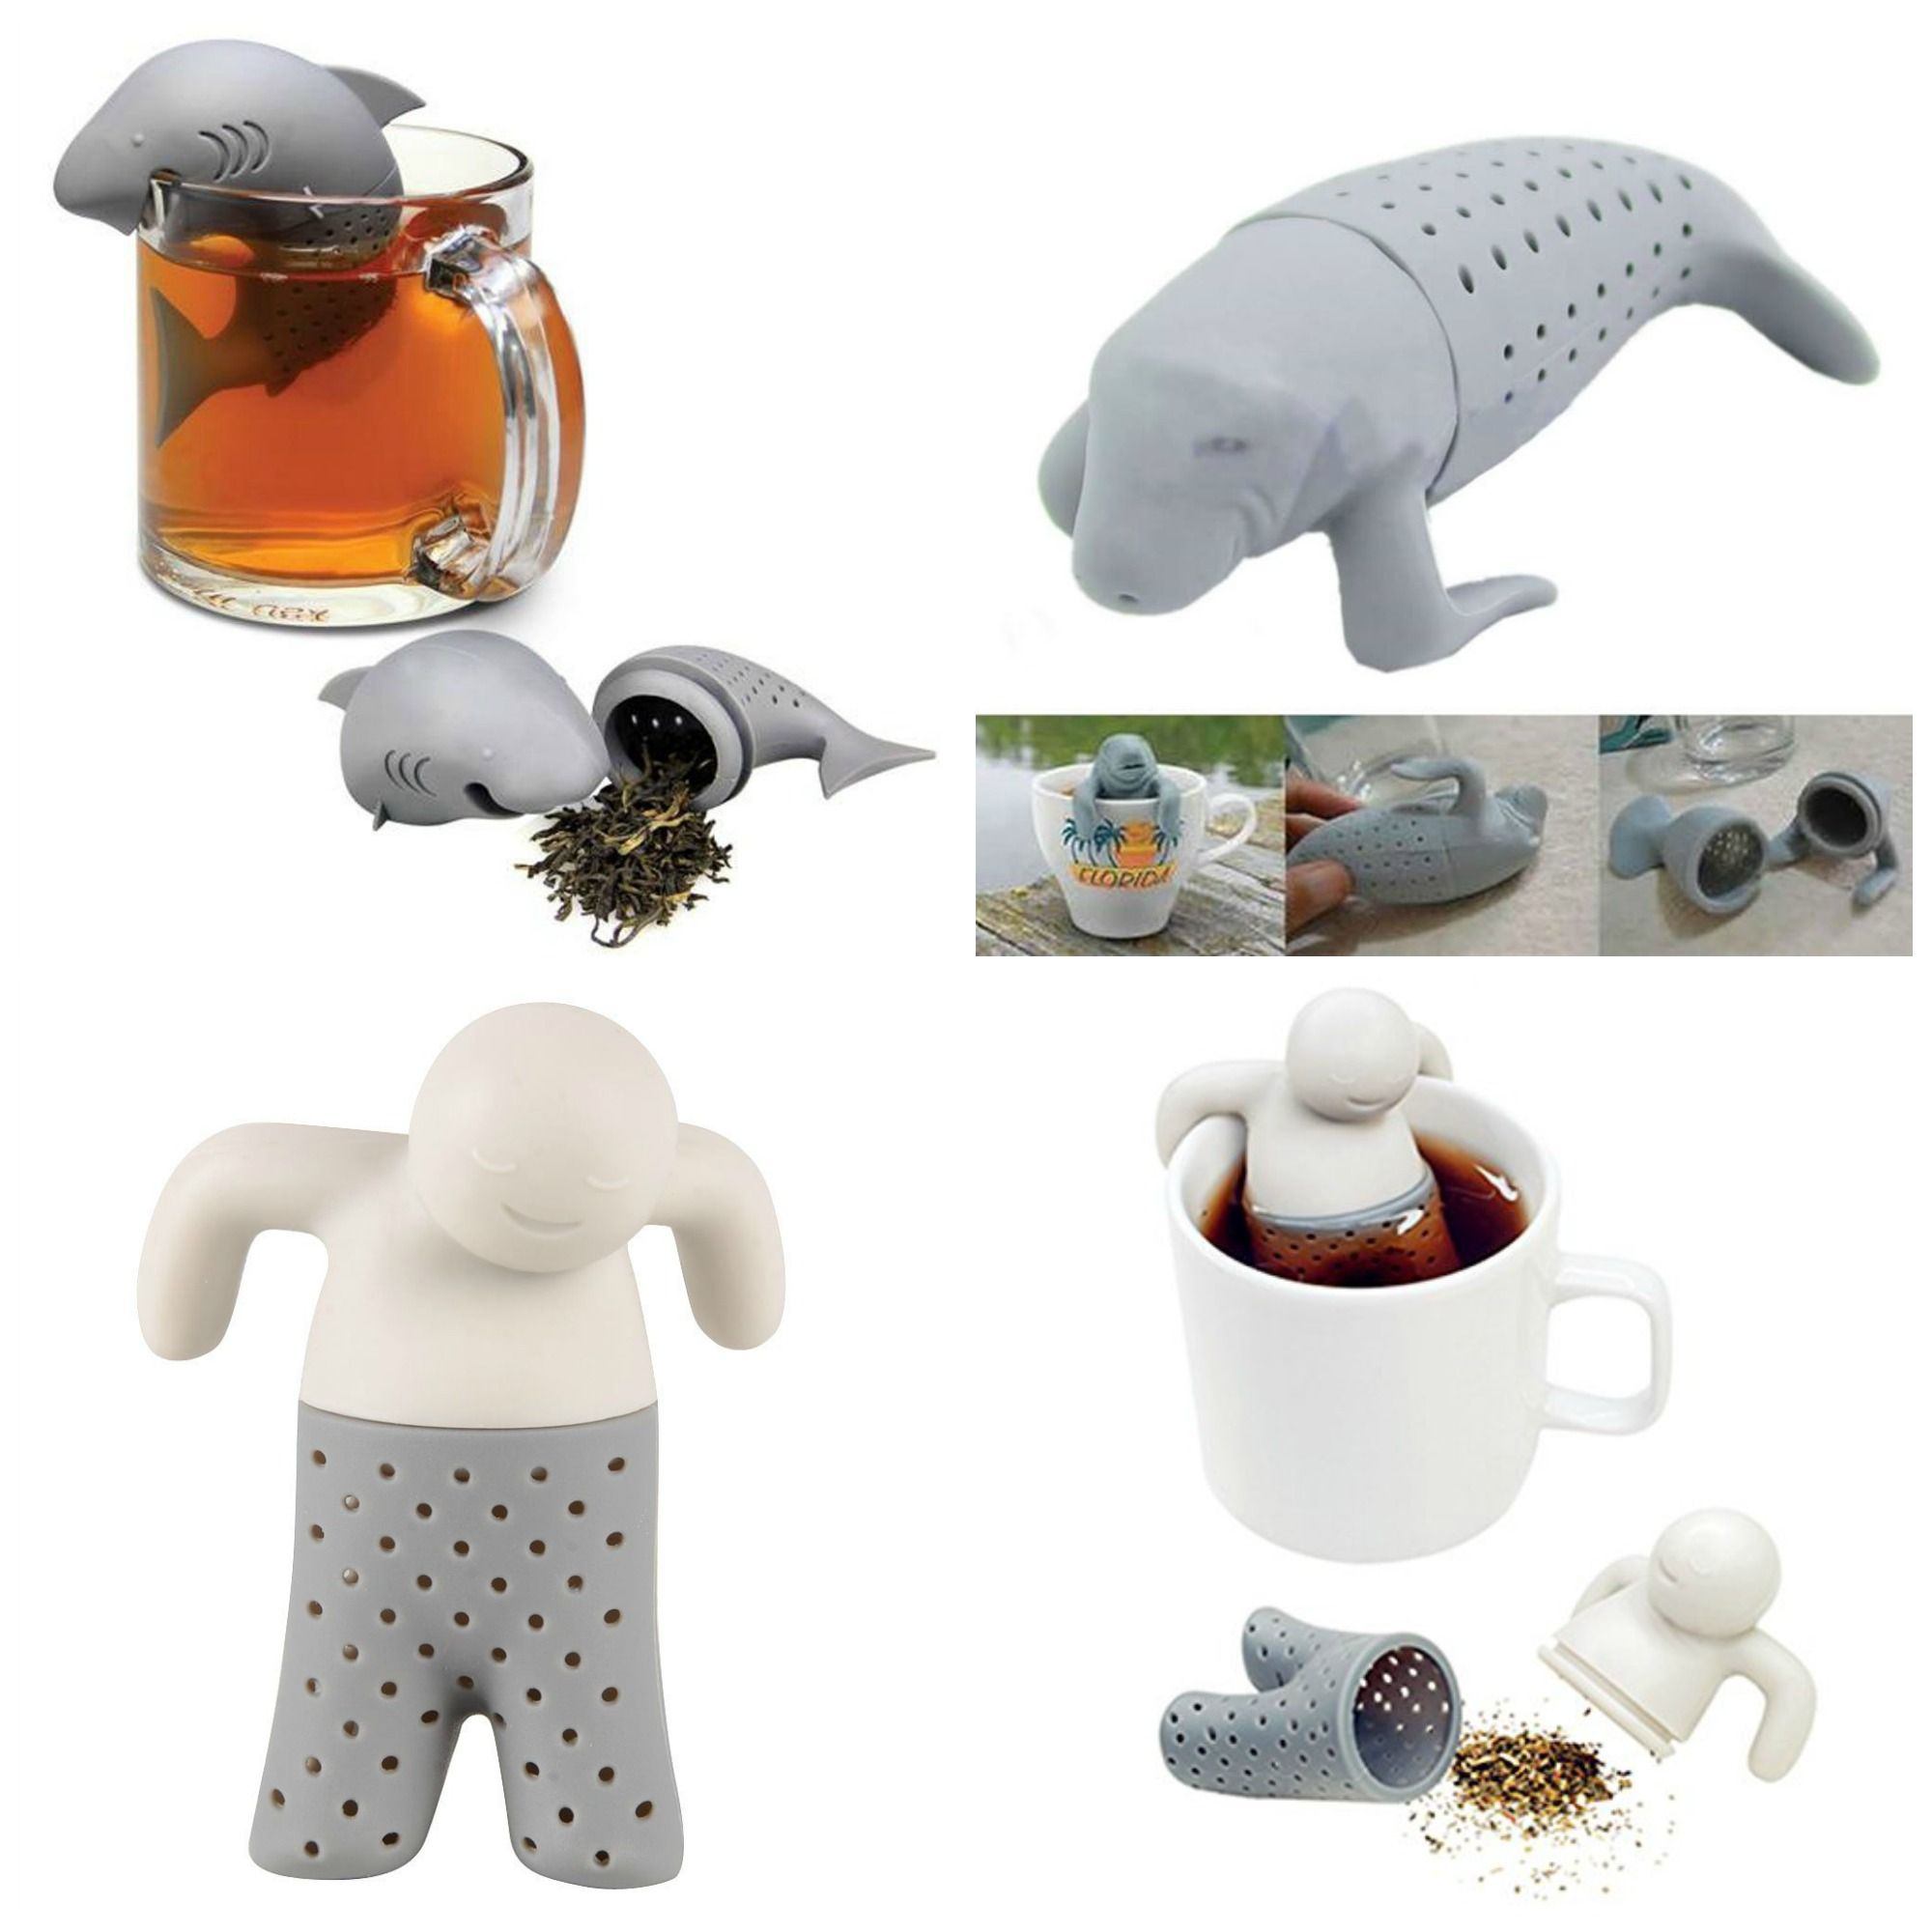 Quirky WELL PRICED Tea Infusers for the Tea Boffins in the house